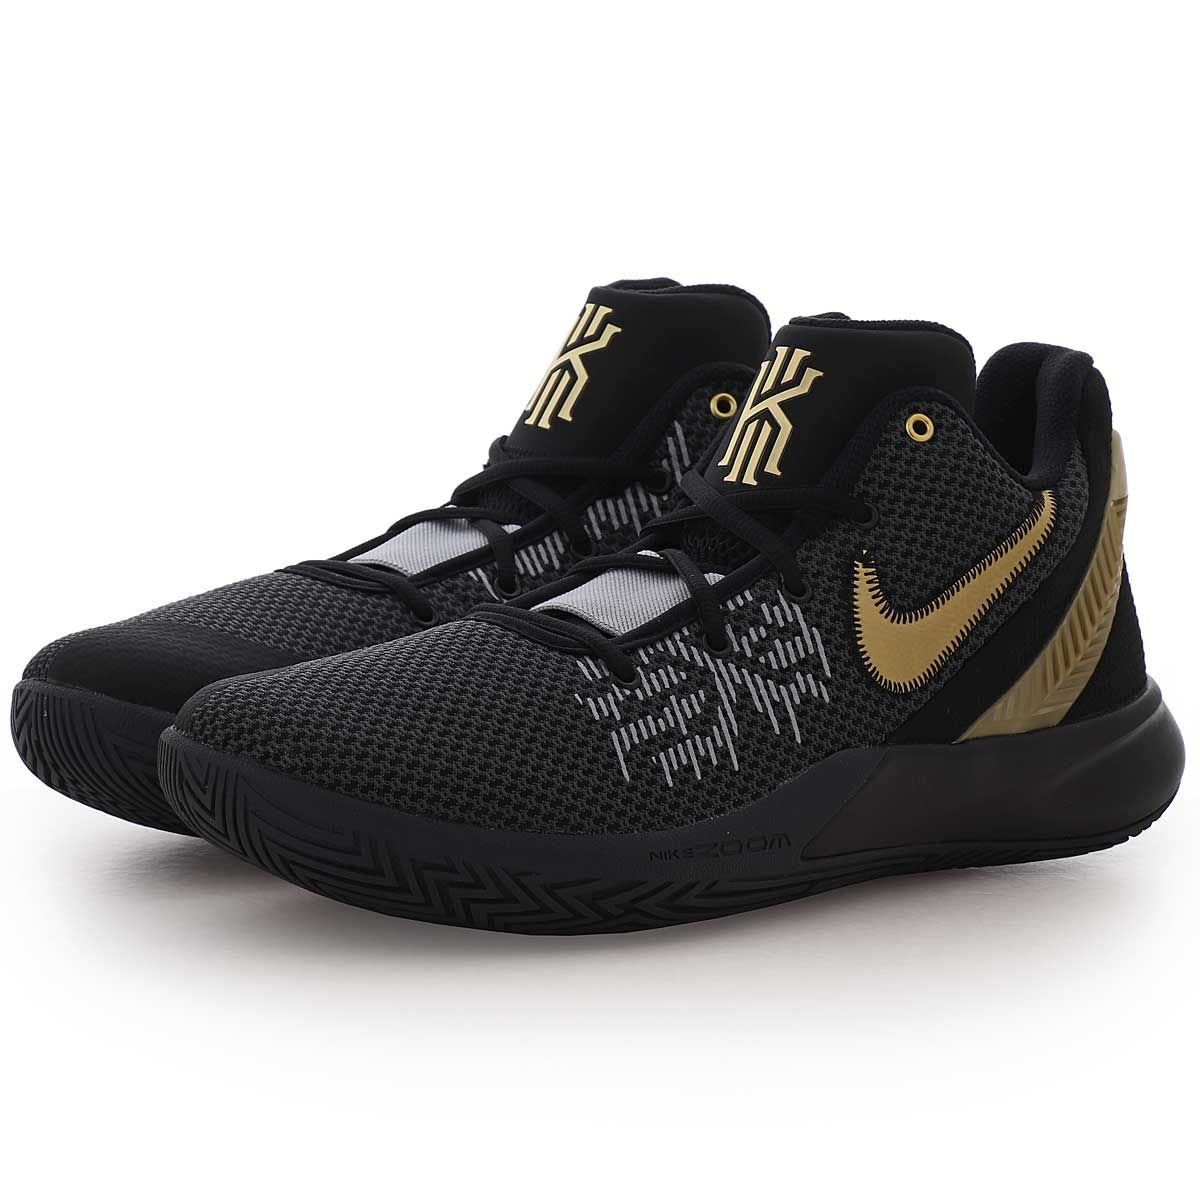 Nike Kyrie Fliegenfalle Ii Manner Blk Blk Gld 004 Basketball Schuhe Nike Nike Kyrie Nike Shoes